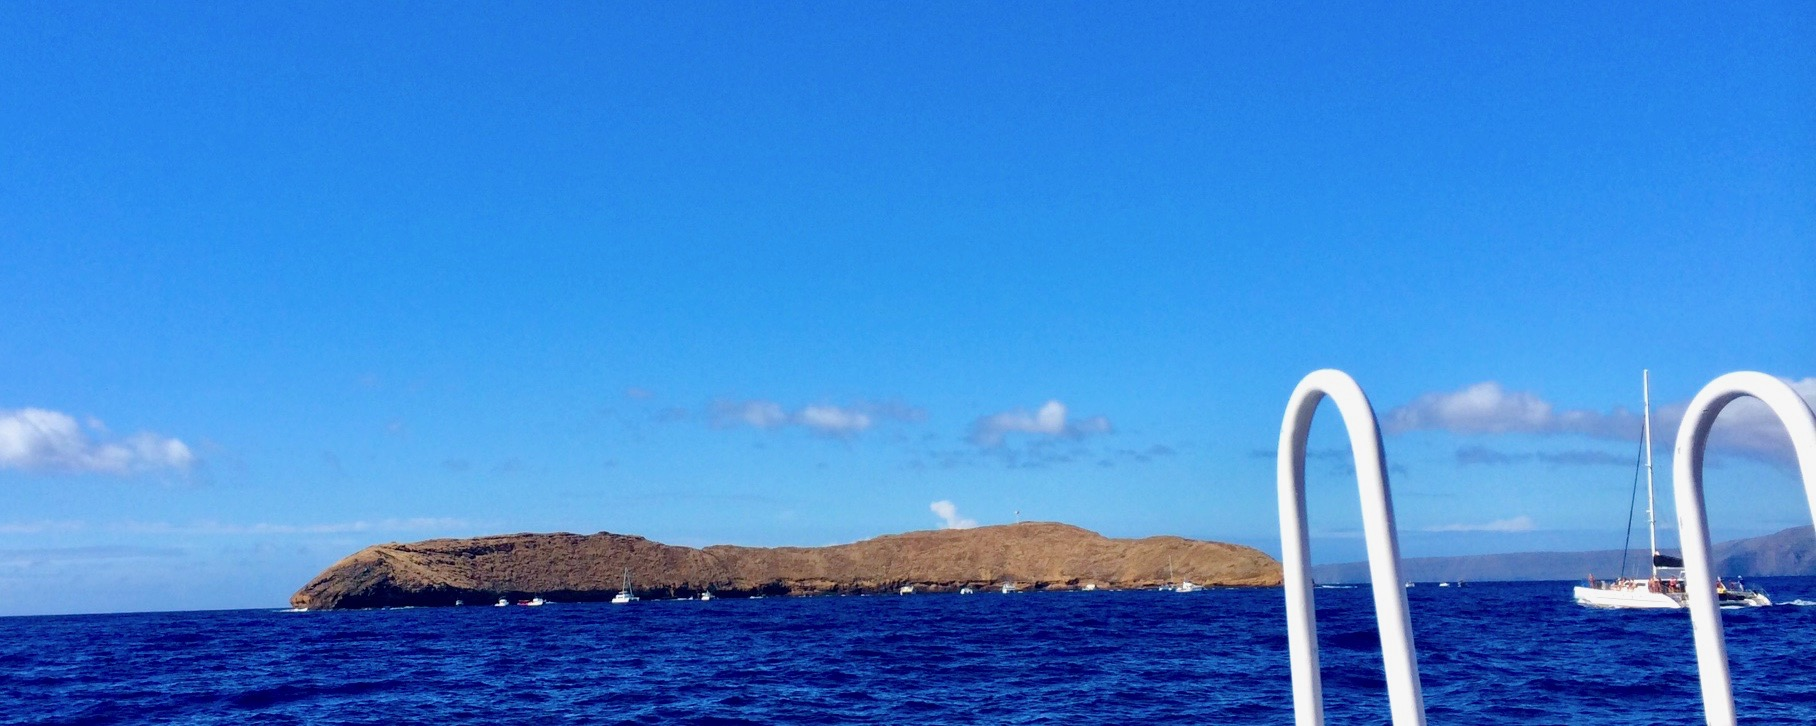 Molokini Crater Above Water in Maui, Hawaii